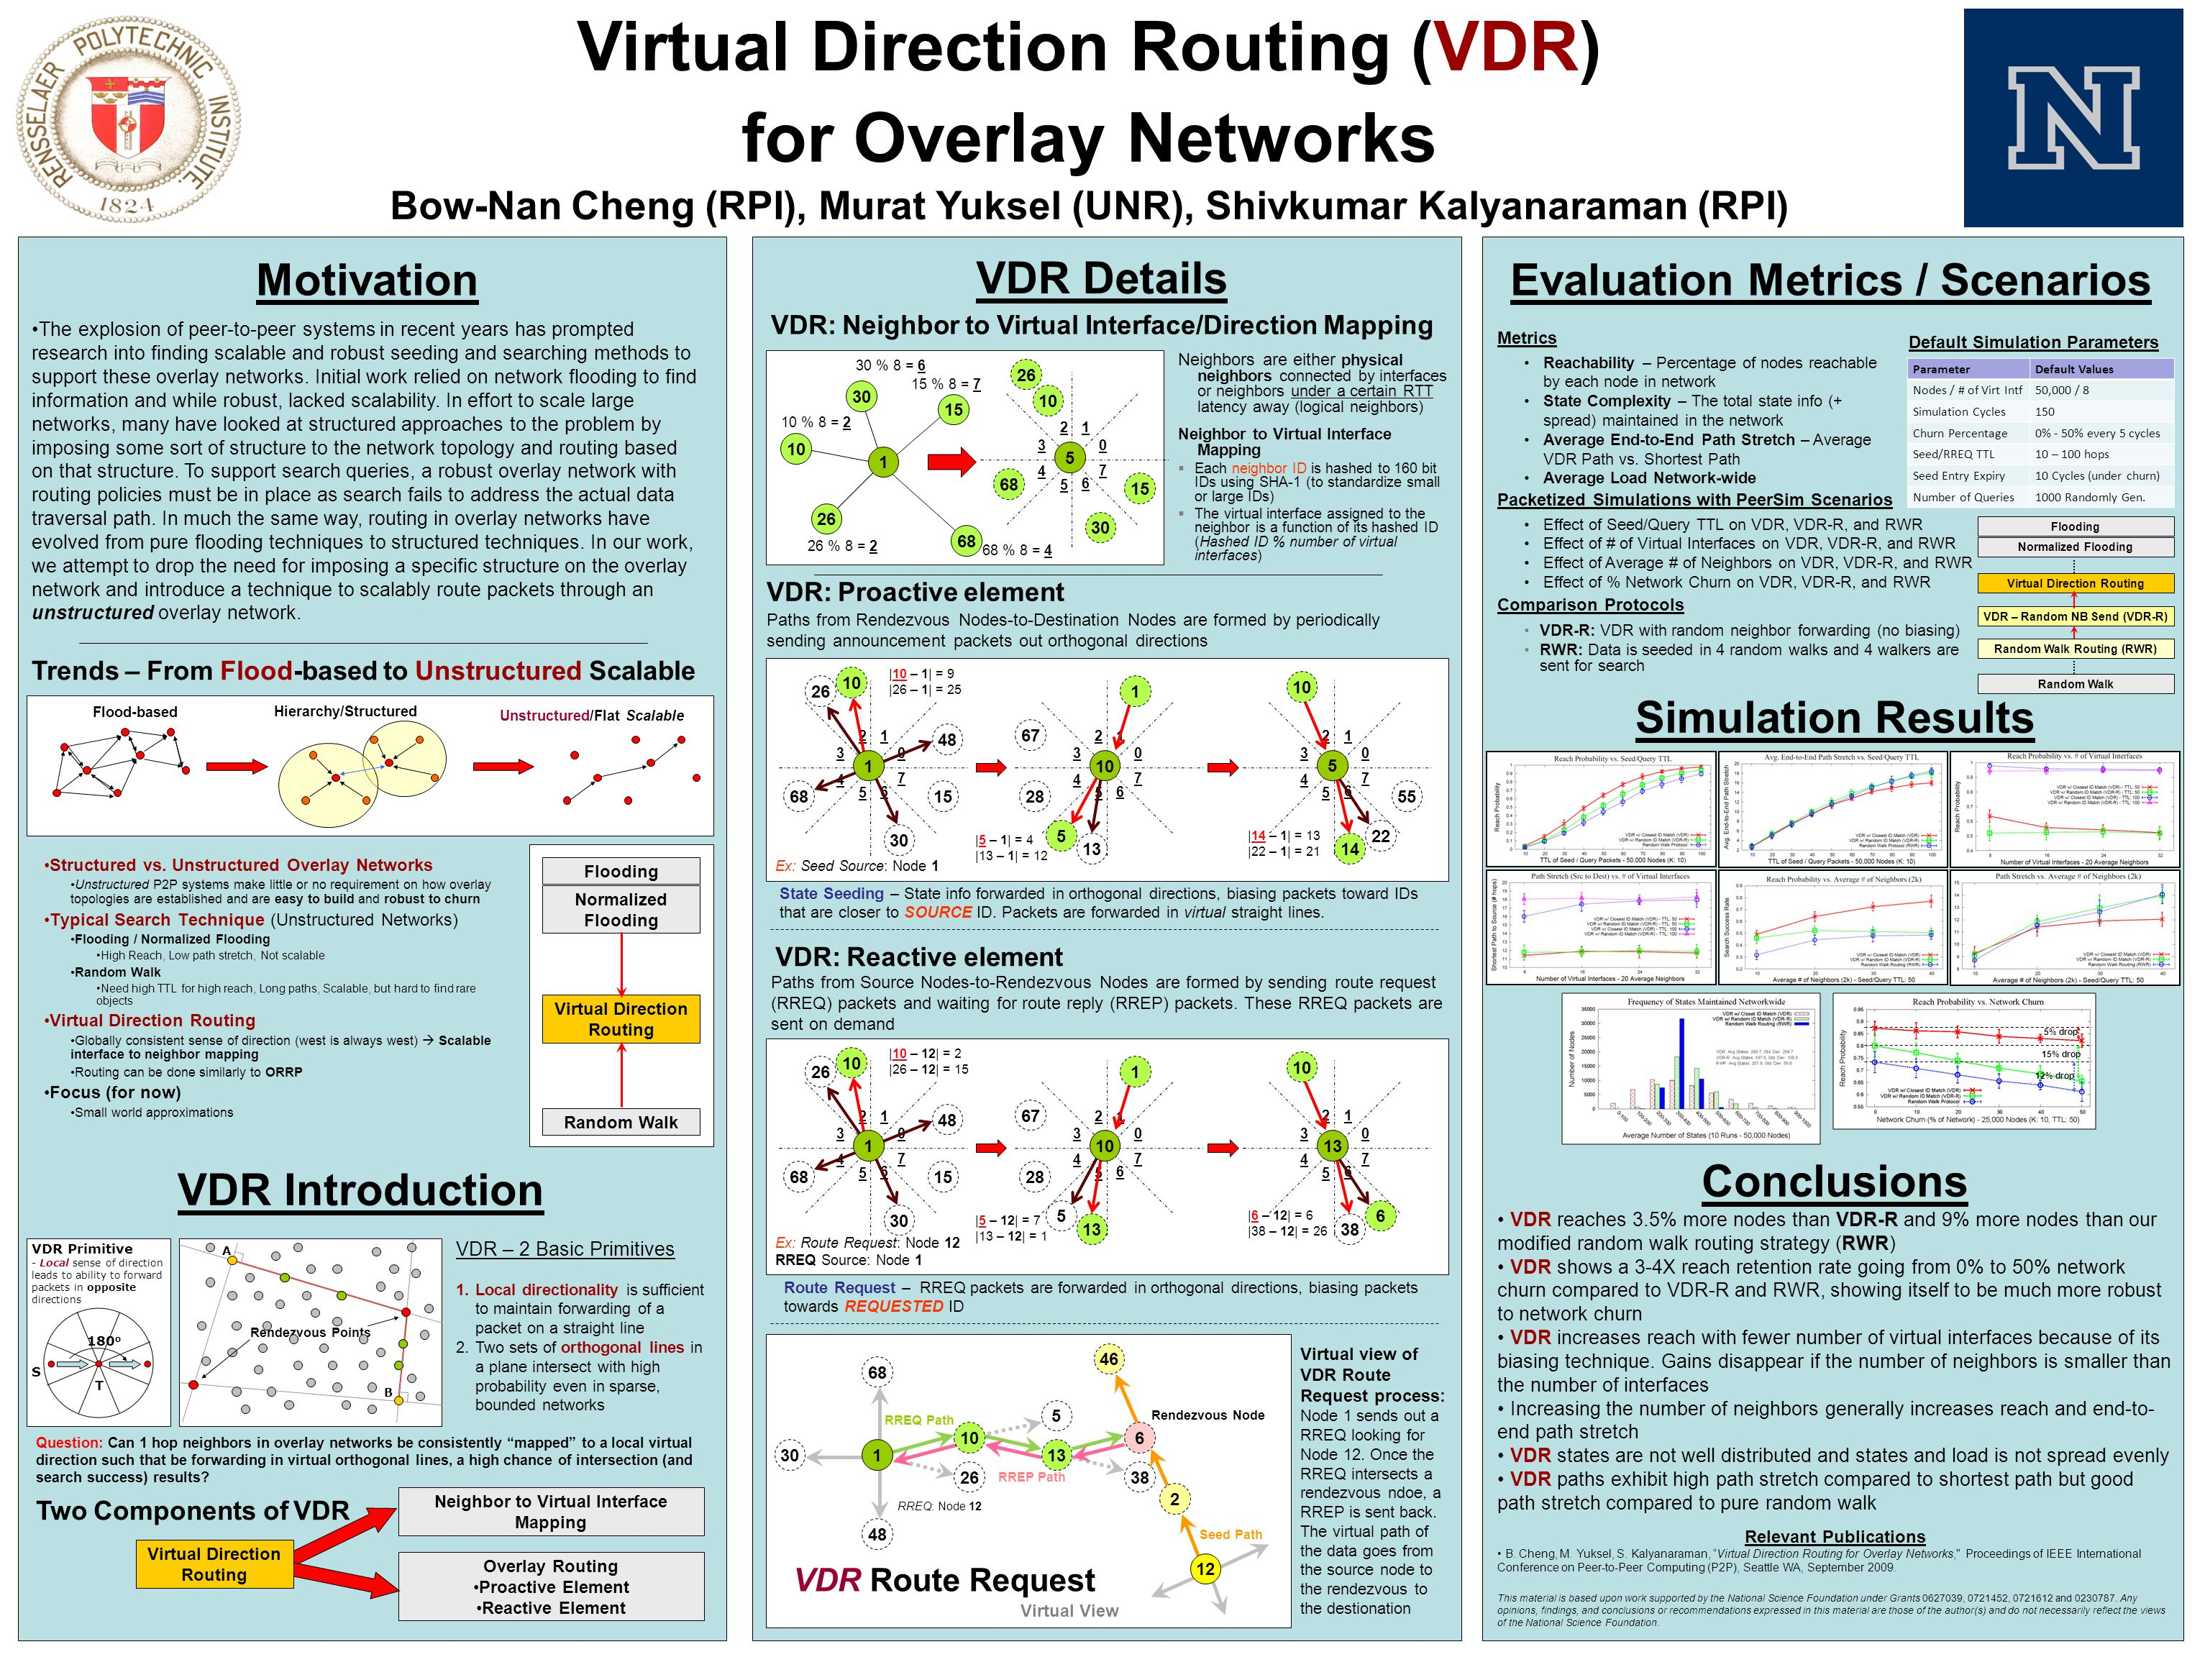 VDR: Proactive element Conclusions VDR reaches 3.5% more nodes than VDR-R and 9% more nodes than our modified random walk routing strategy (RWR) VDR s